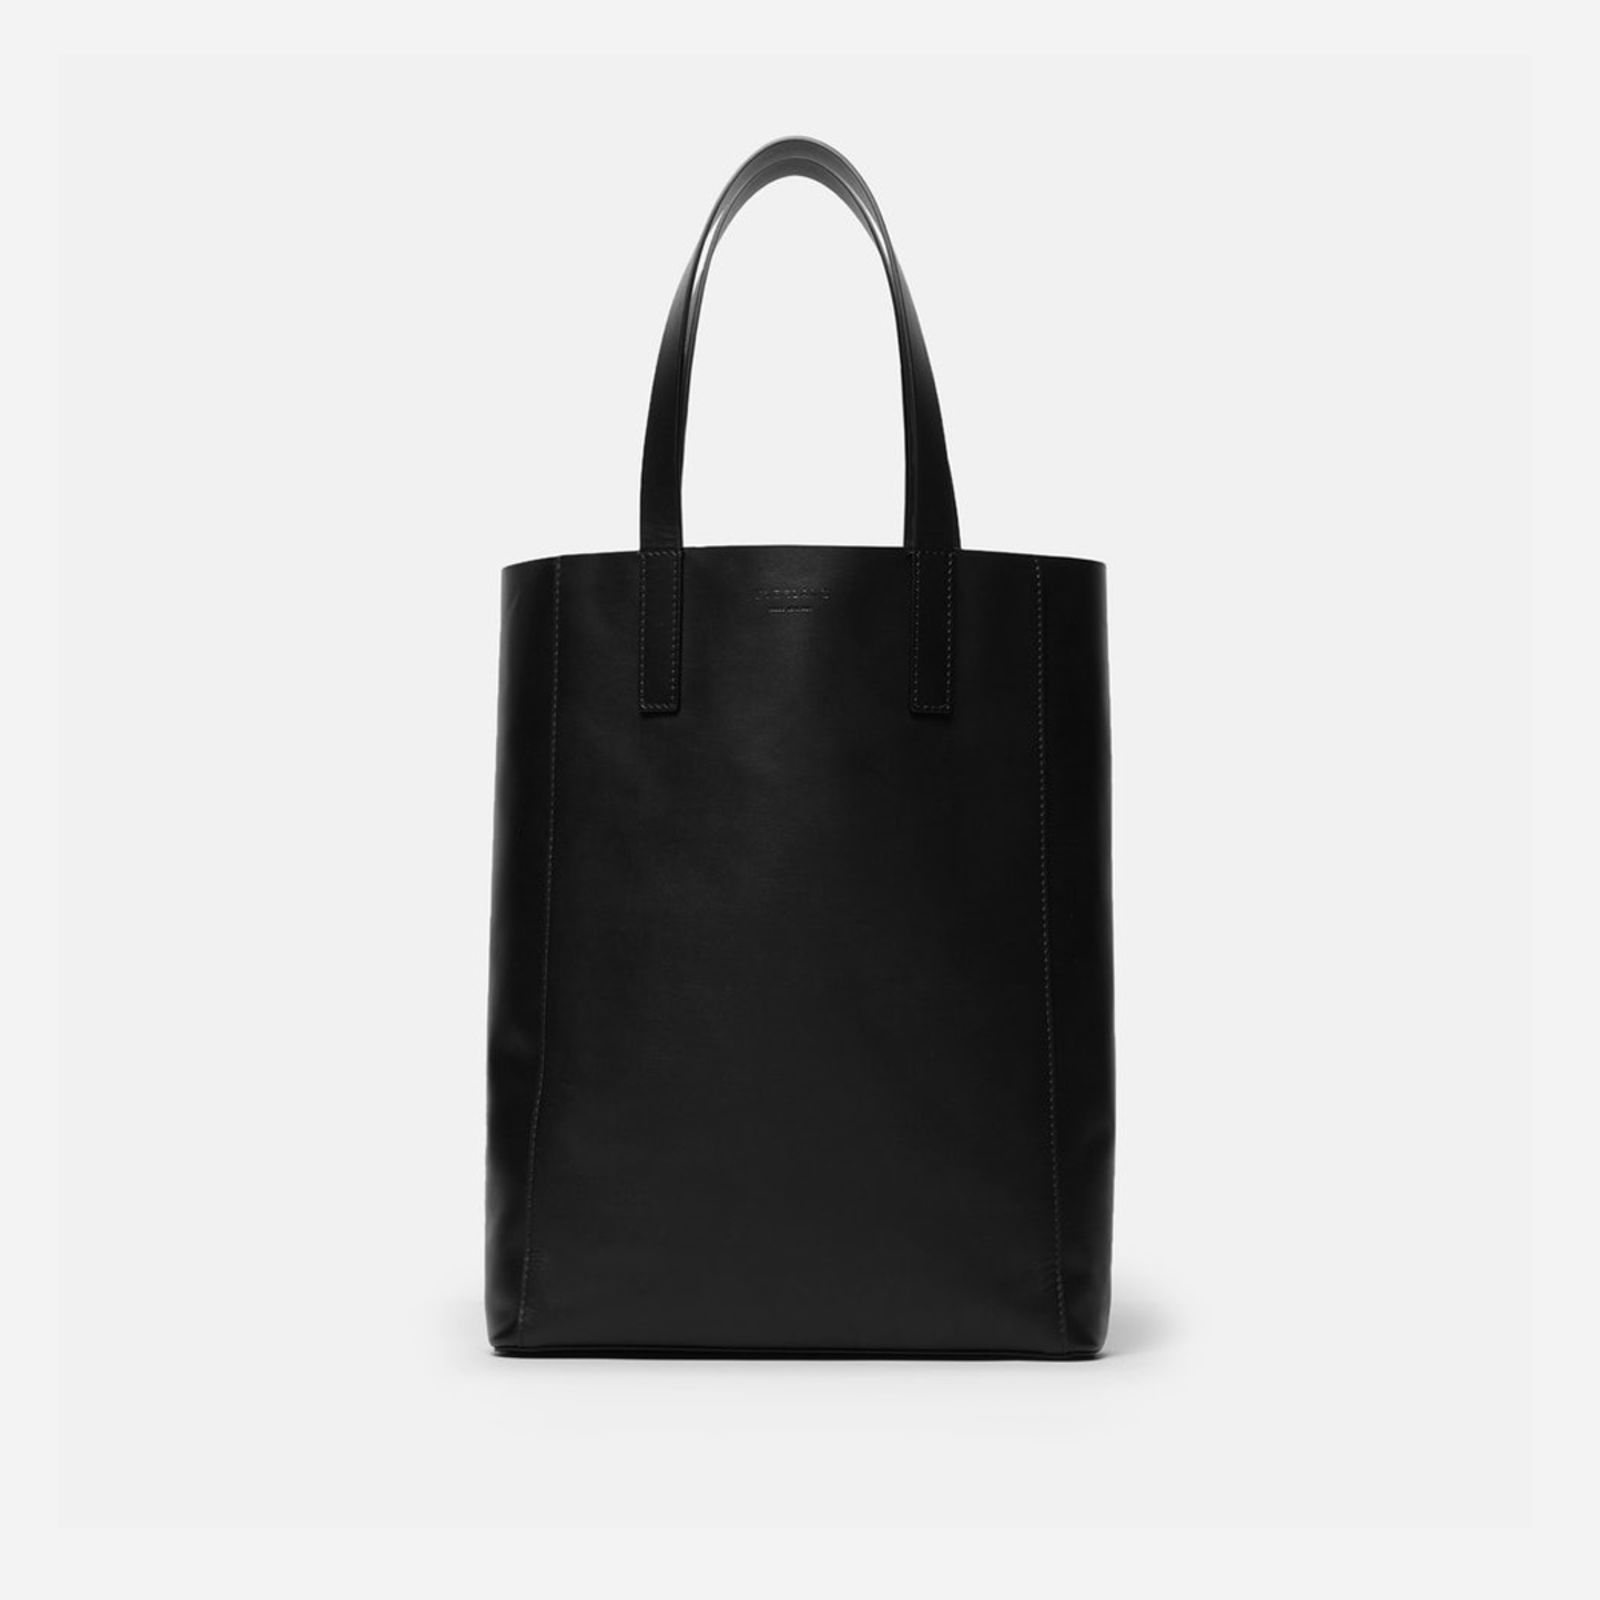 769f7d2d3073 Women s Leather Magazine Tote Bag by Everlane in Black